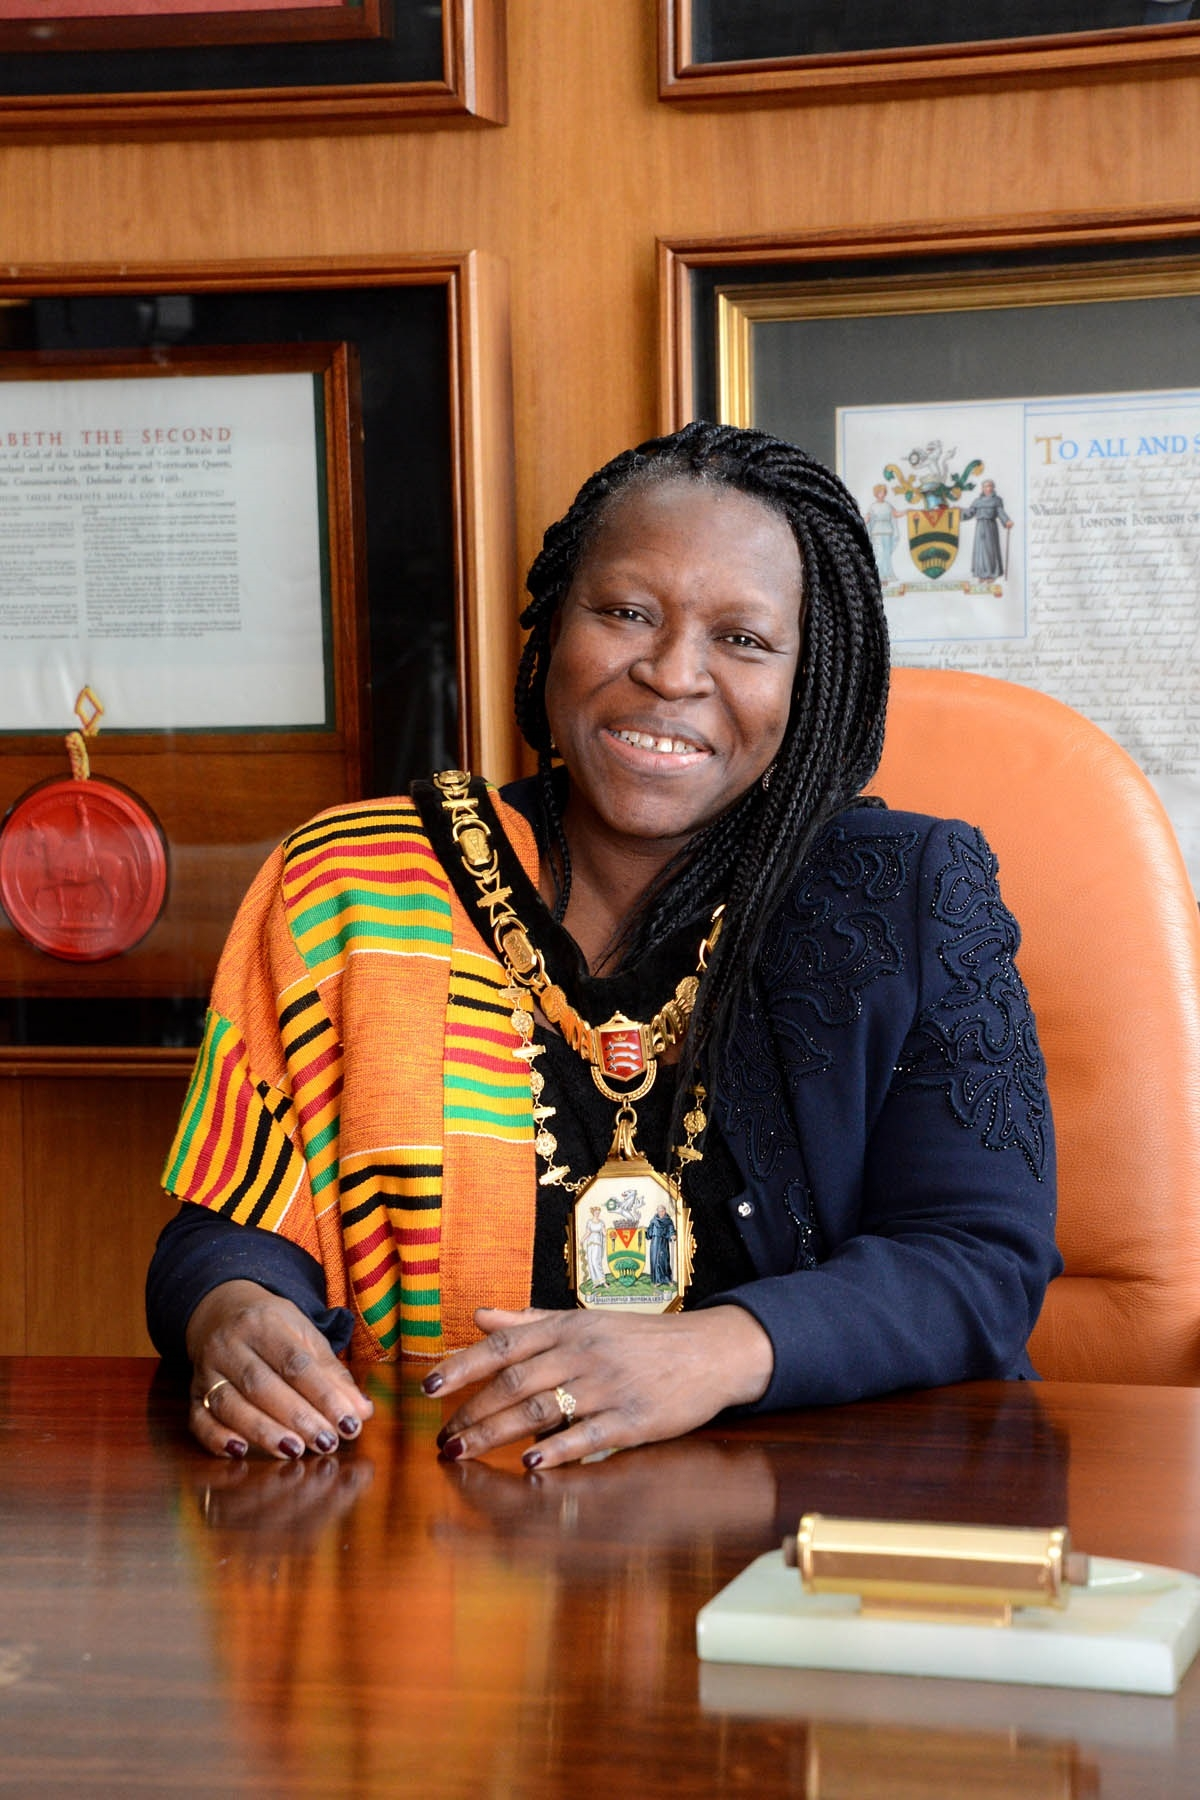 Mayor of Harrow Borough Council, Councillor Nana Asante. Photograph (c) Debbie Dye